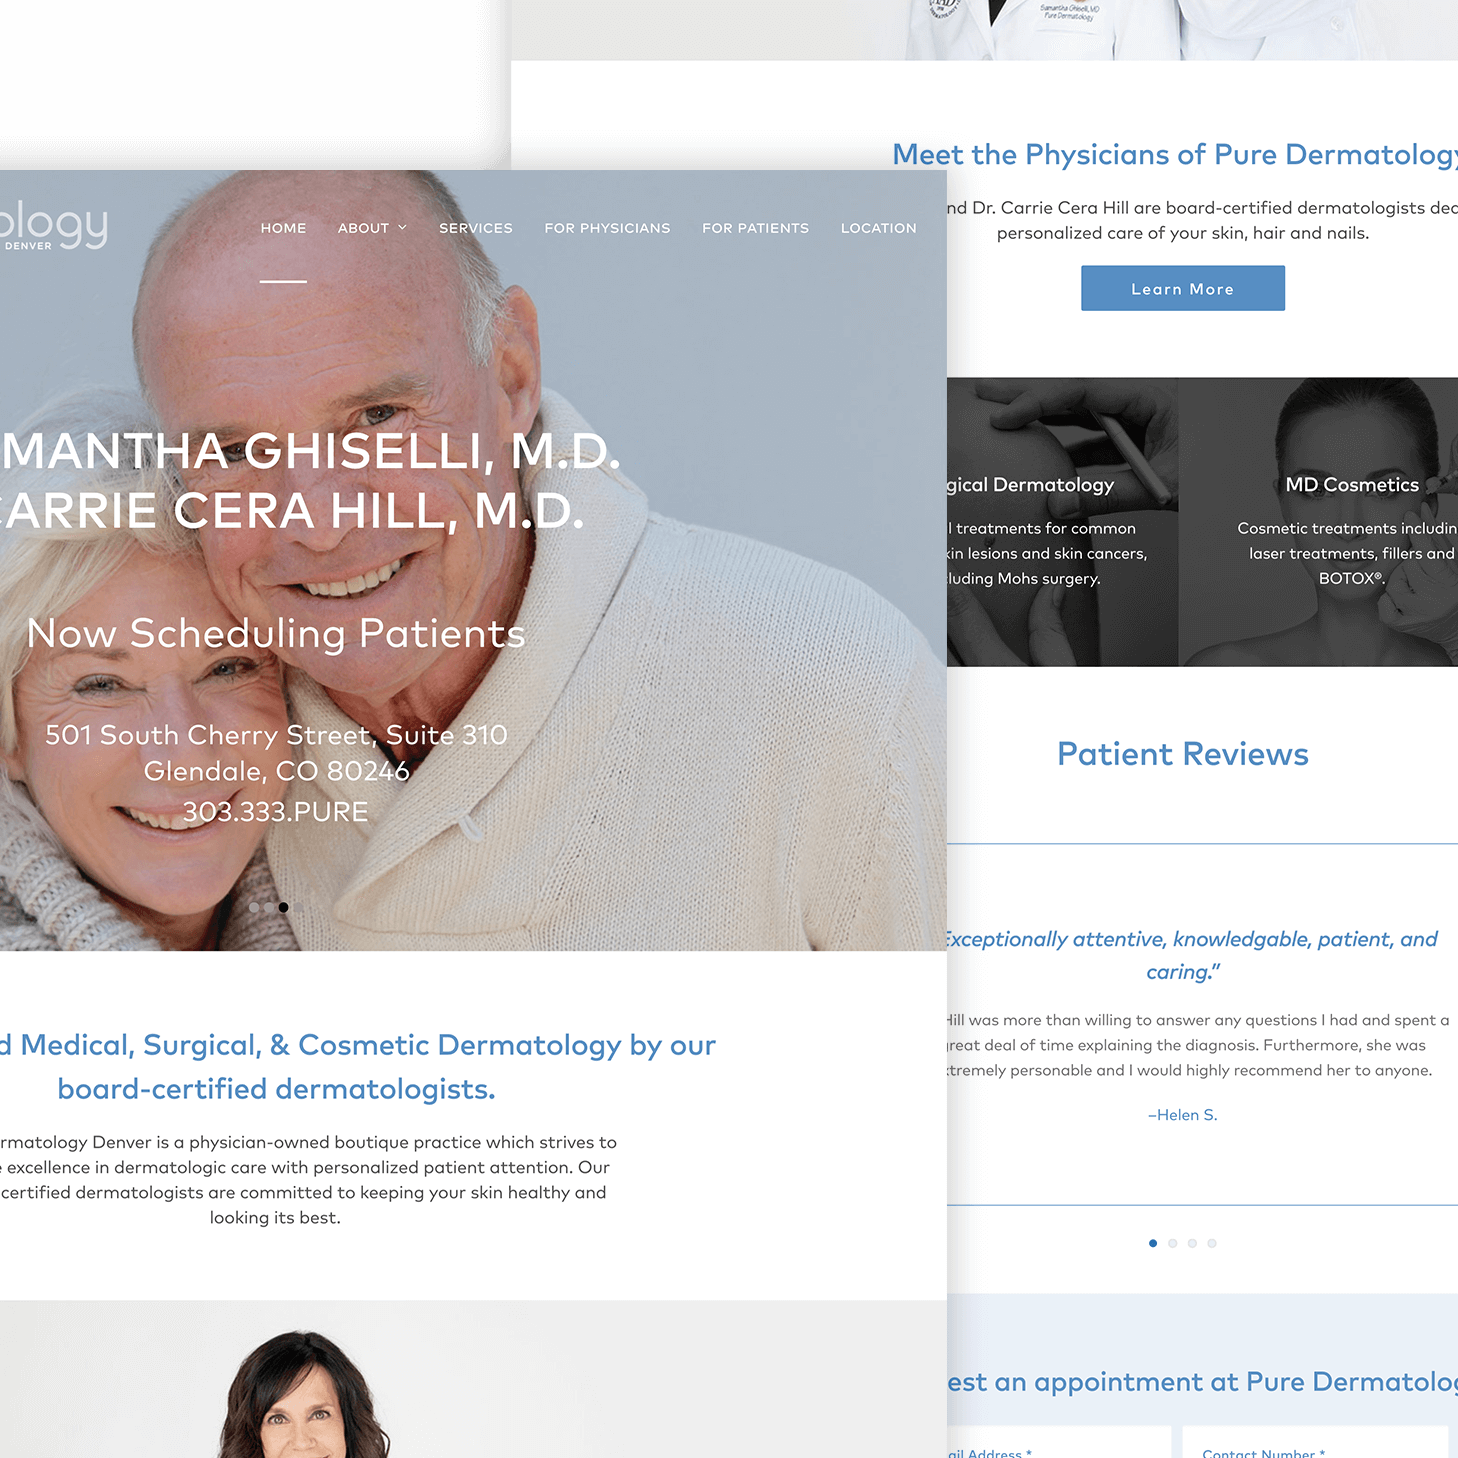 A Digital Marketing Agency and Web Design Agency | Just